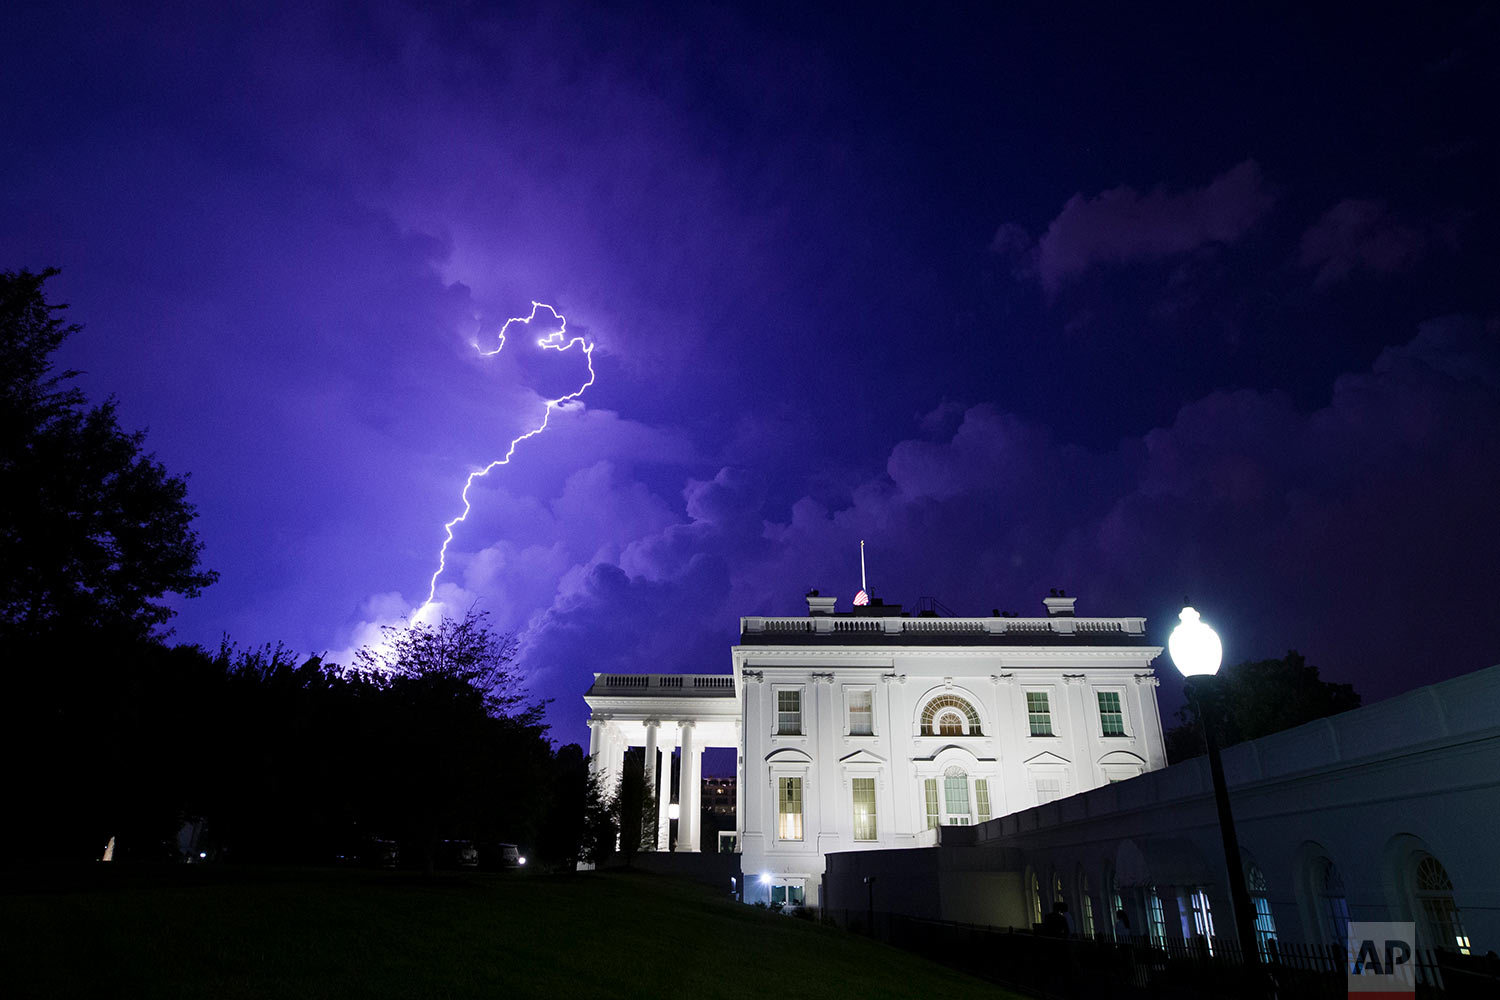 A bolt of lightning illuminates the clouds of a thunderstorm behind the White House, Tuesday, Aug. 6, 2019, in Washington. (AP Photo/Alex Brandon)